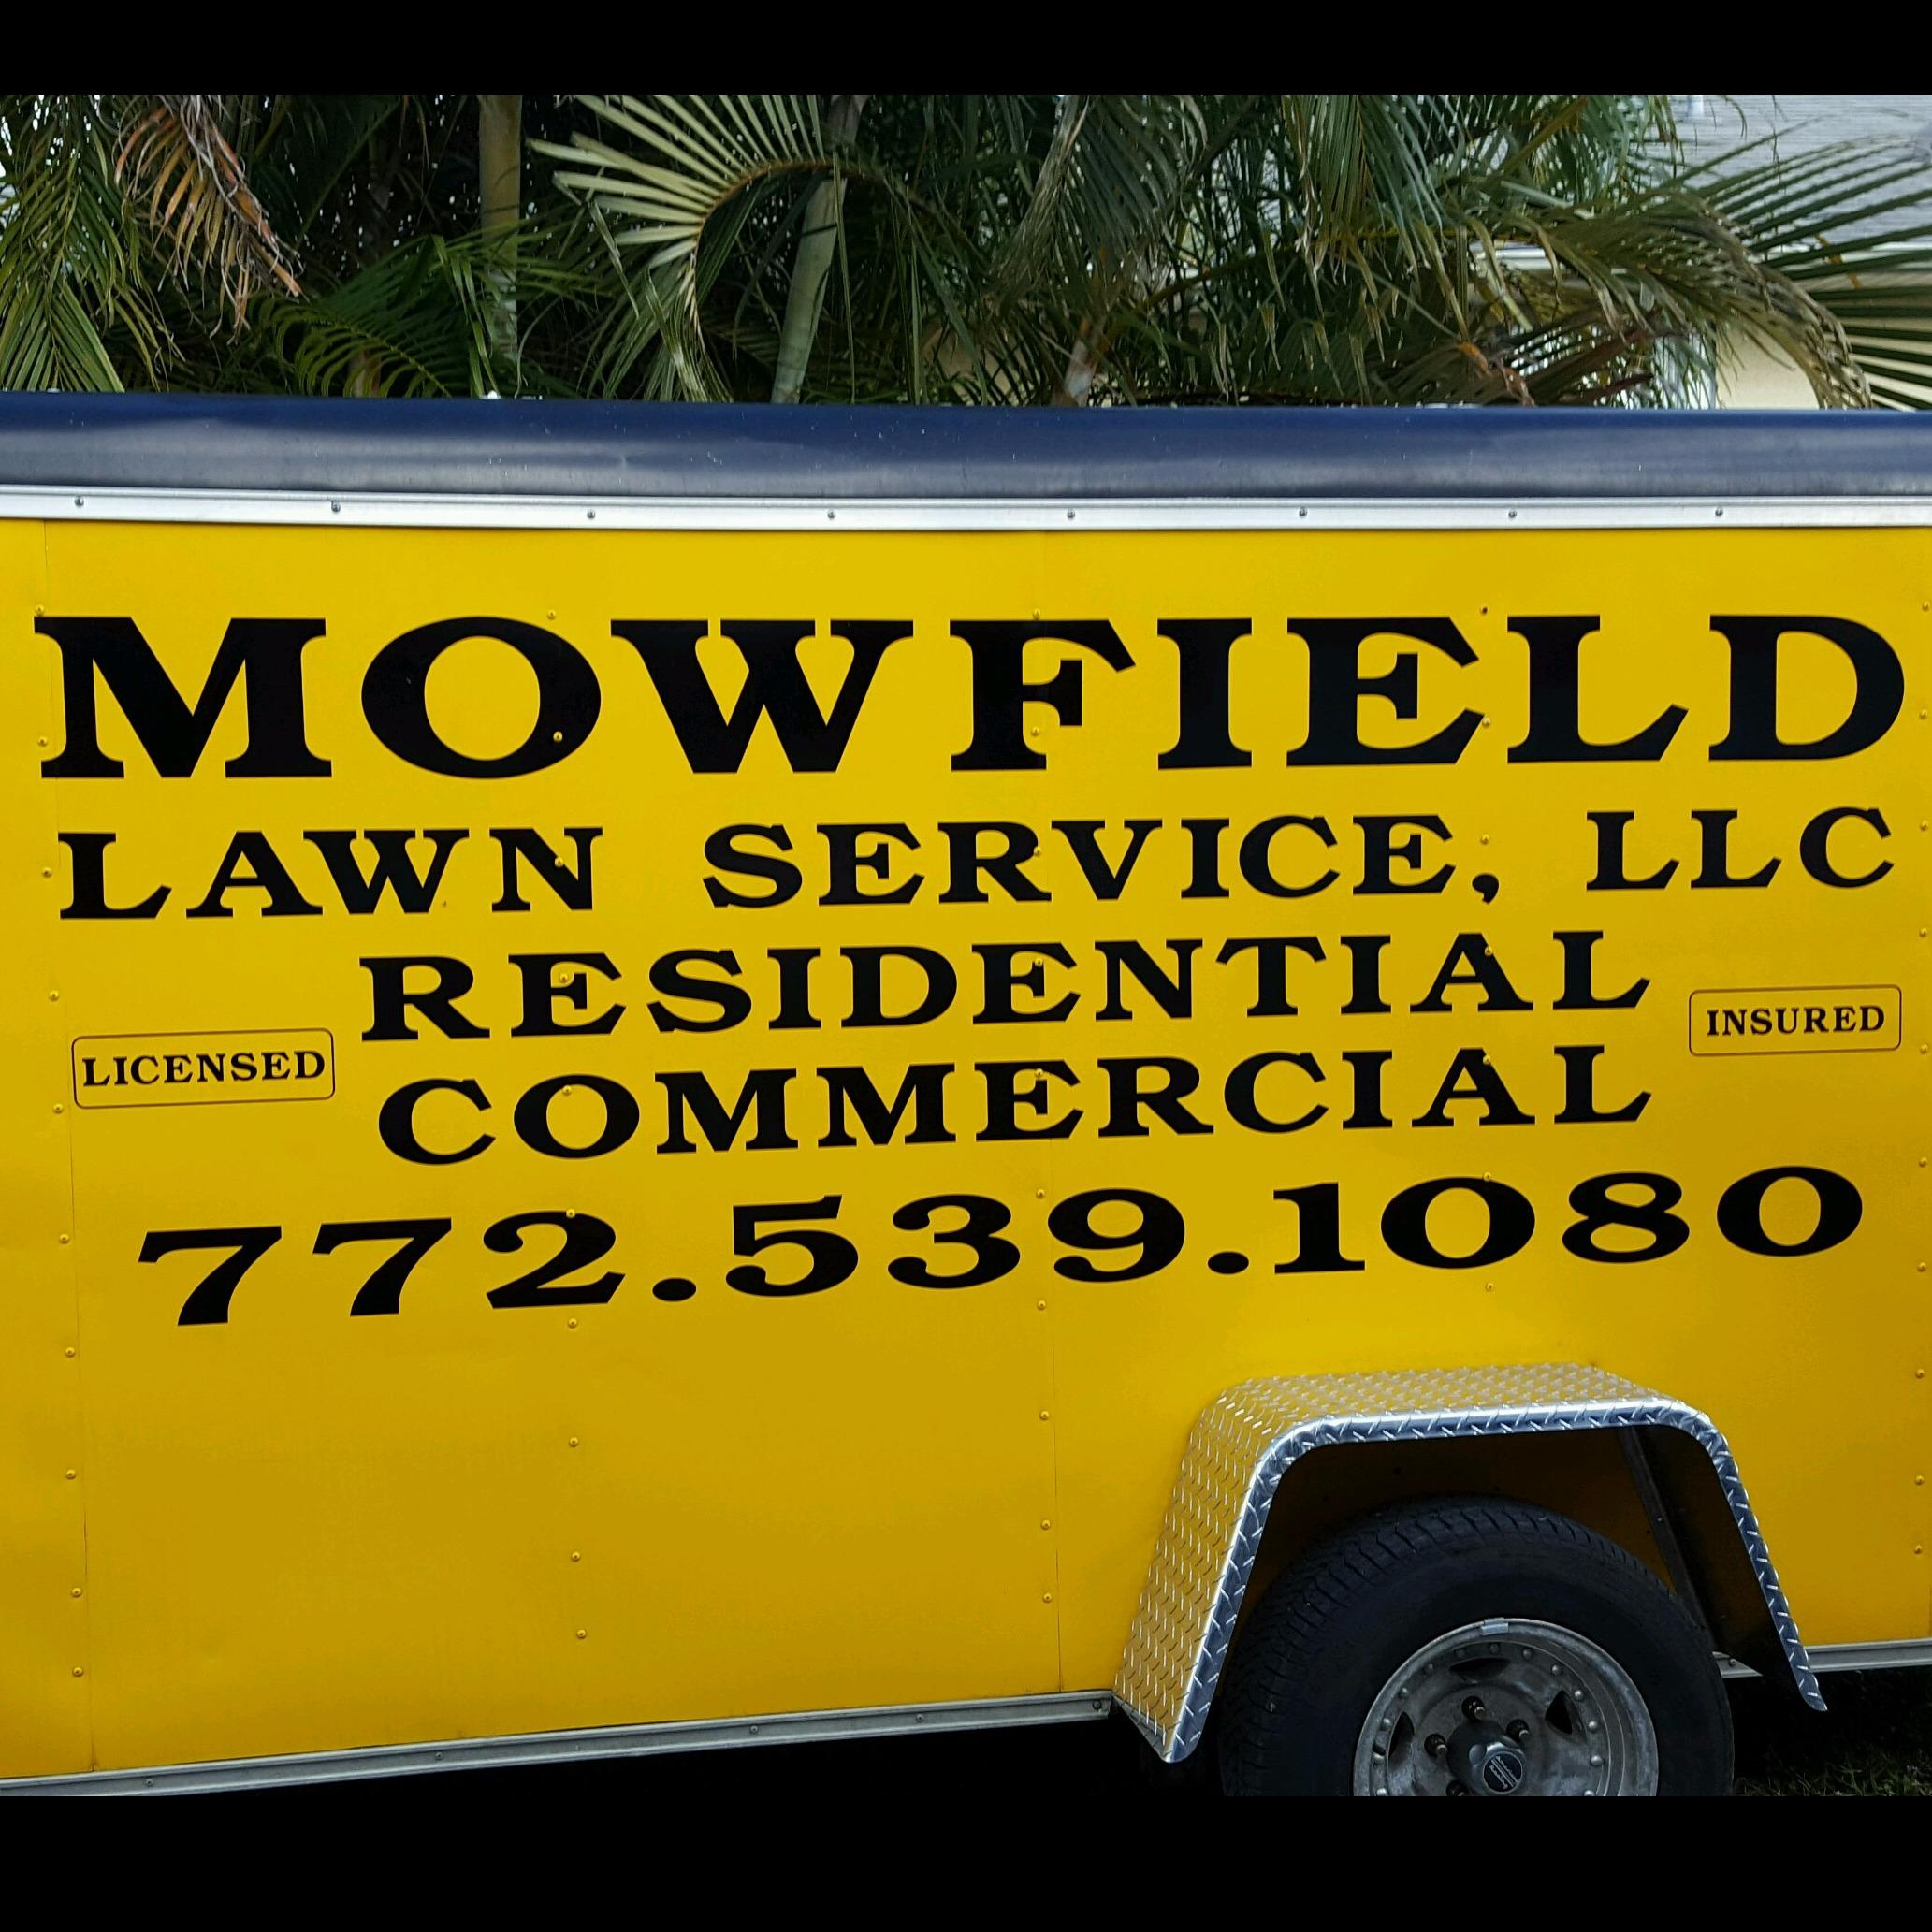 Mowfield 39 s lawn service llc vero beach florida fl for Local lawn care services